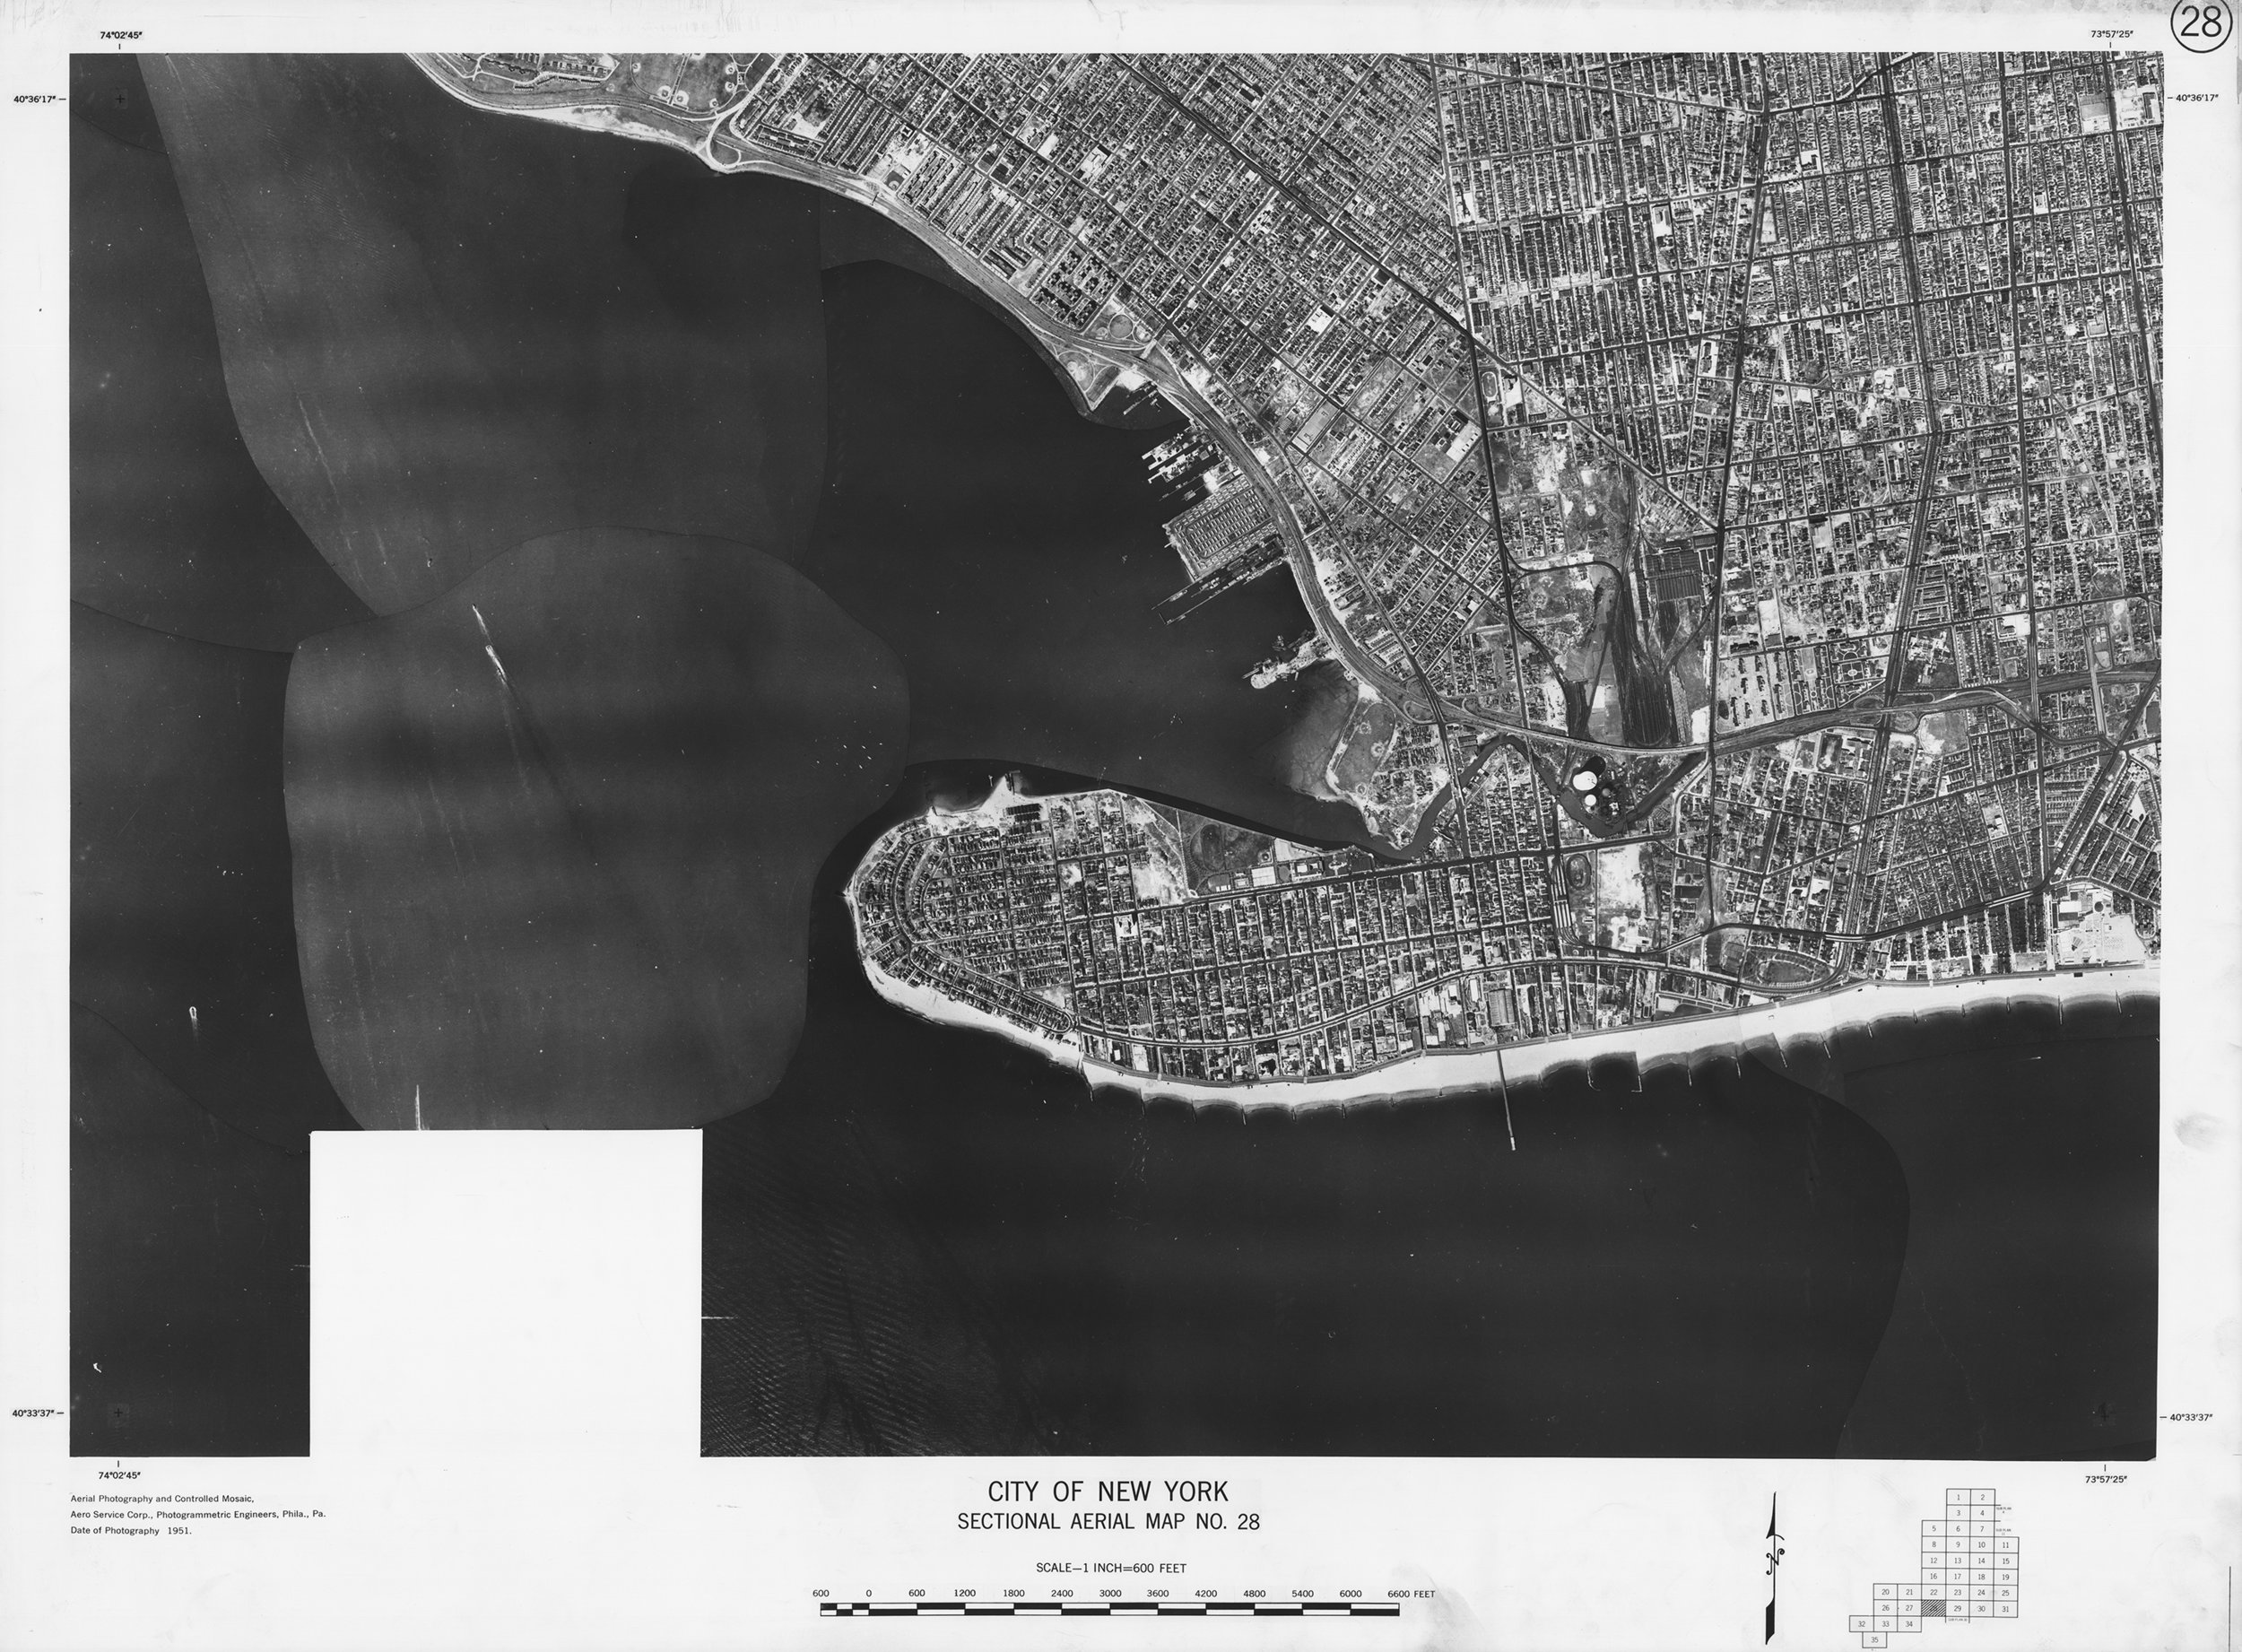 Sectional Aerial Map of the City of New York, No. 28, Coney Island, Gravesend, Brooklyn, 1951. Aero Service Corp. NYC Municipal Archives.